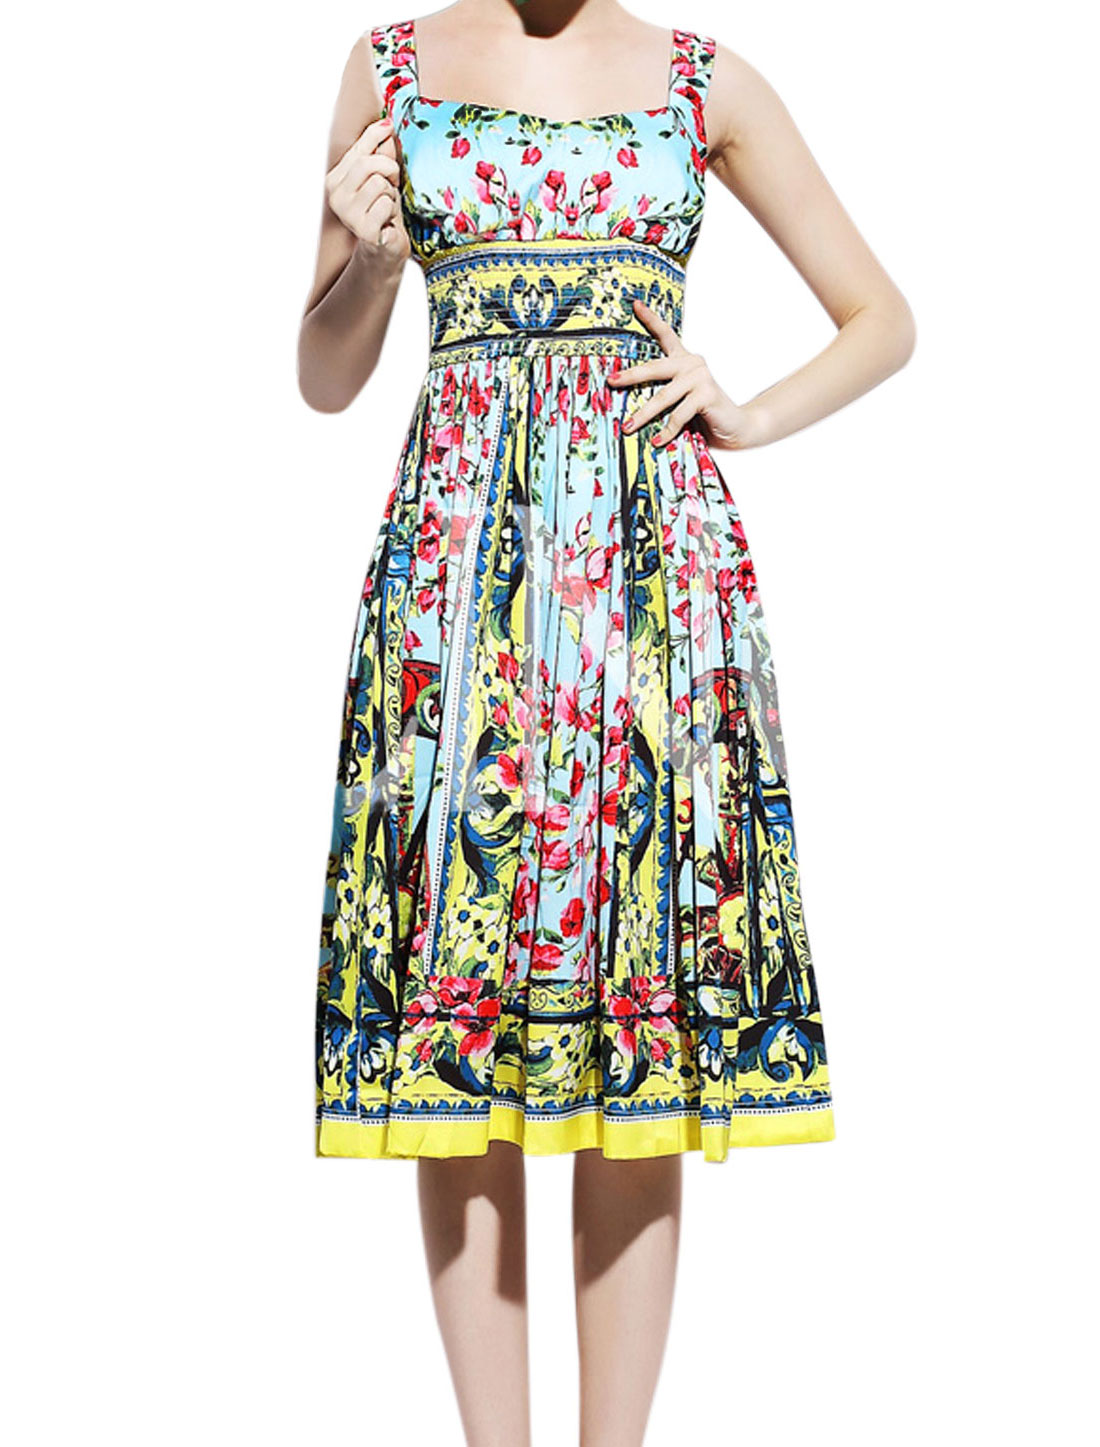 Lady Floral Prints Elastic Smocked Waist Empire Dress Multicolor M